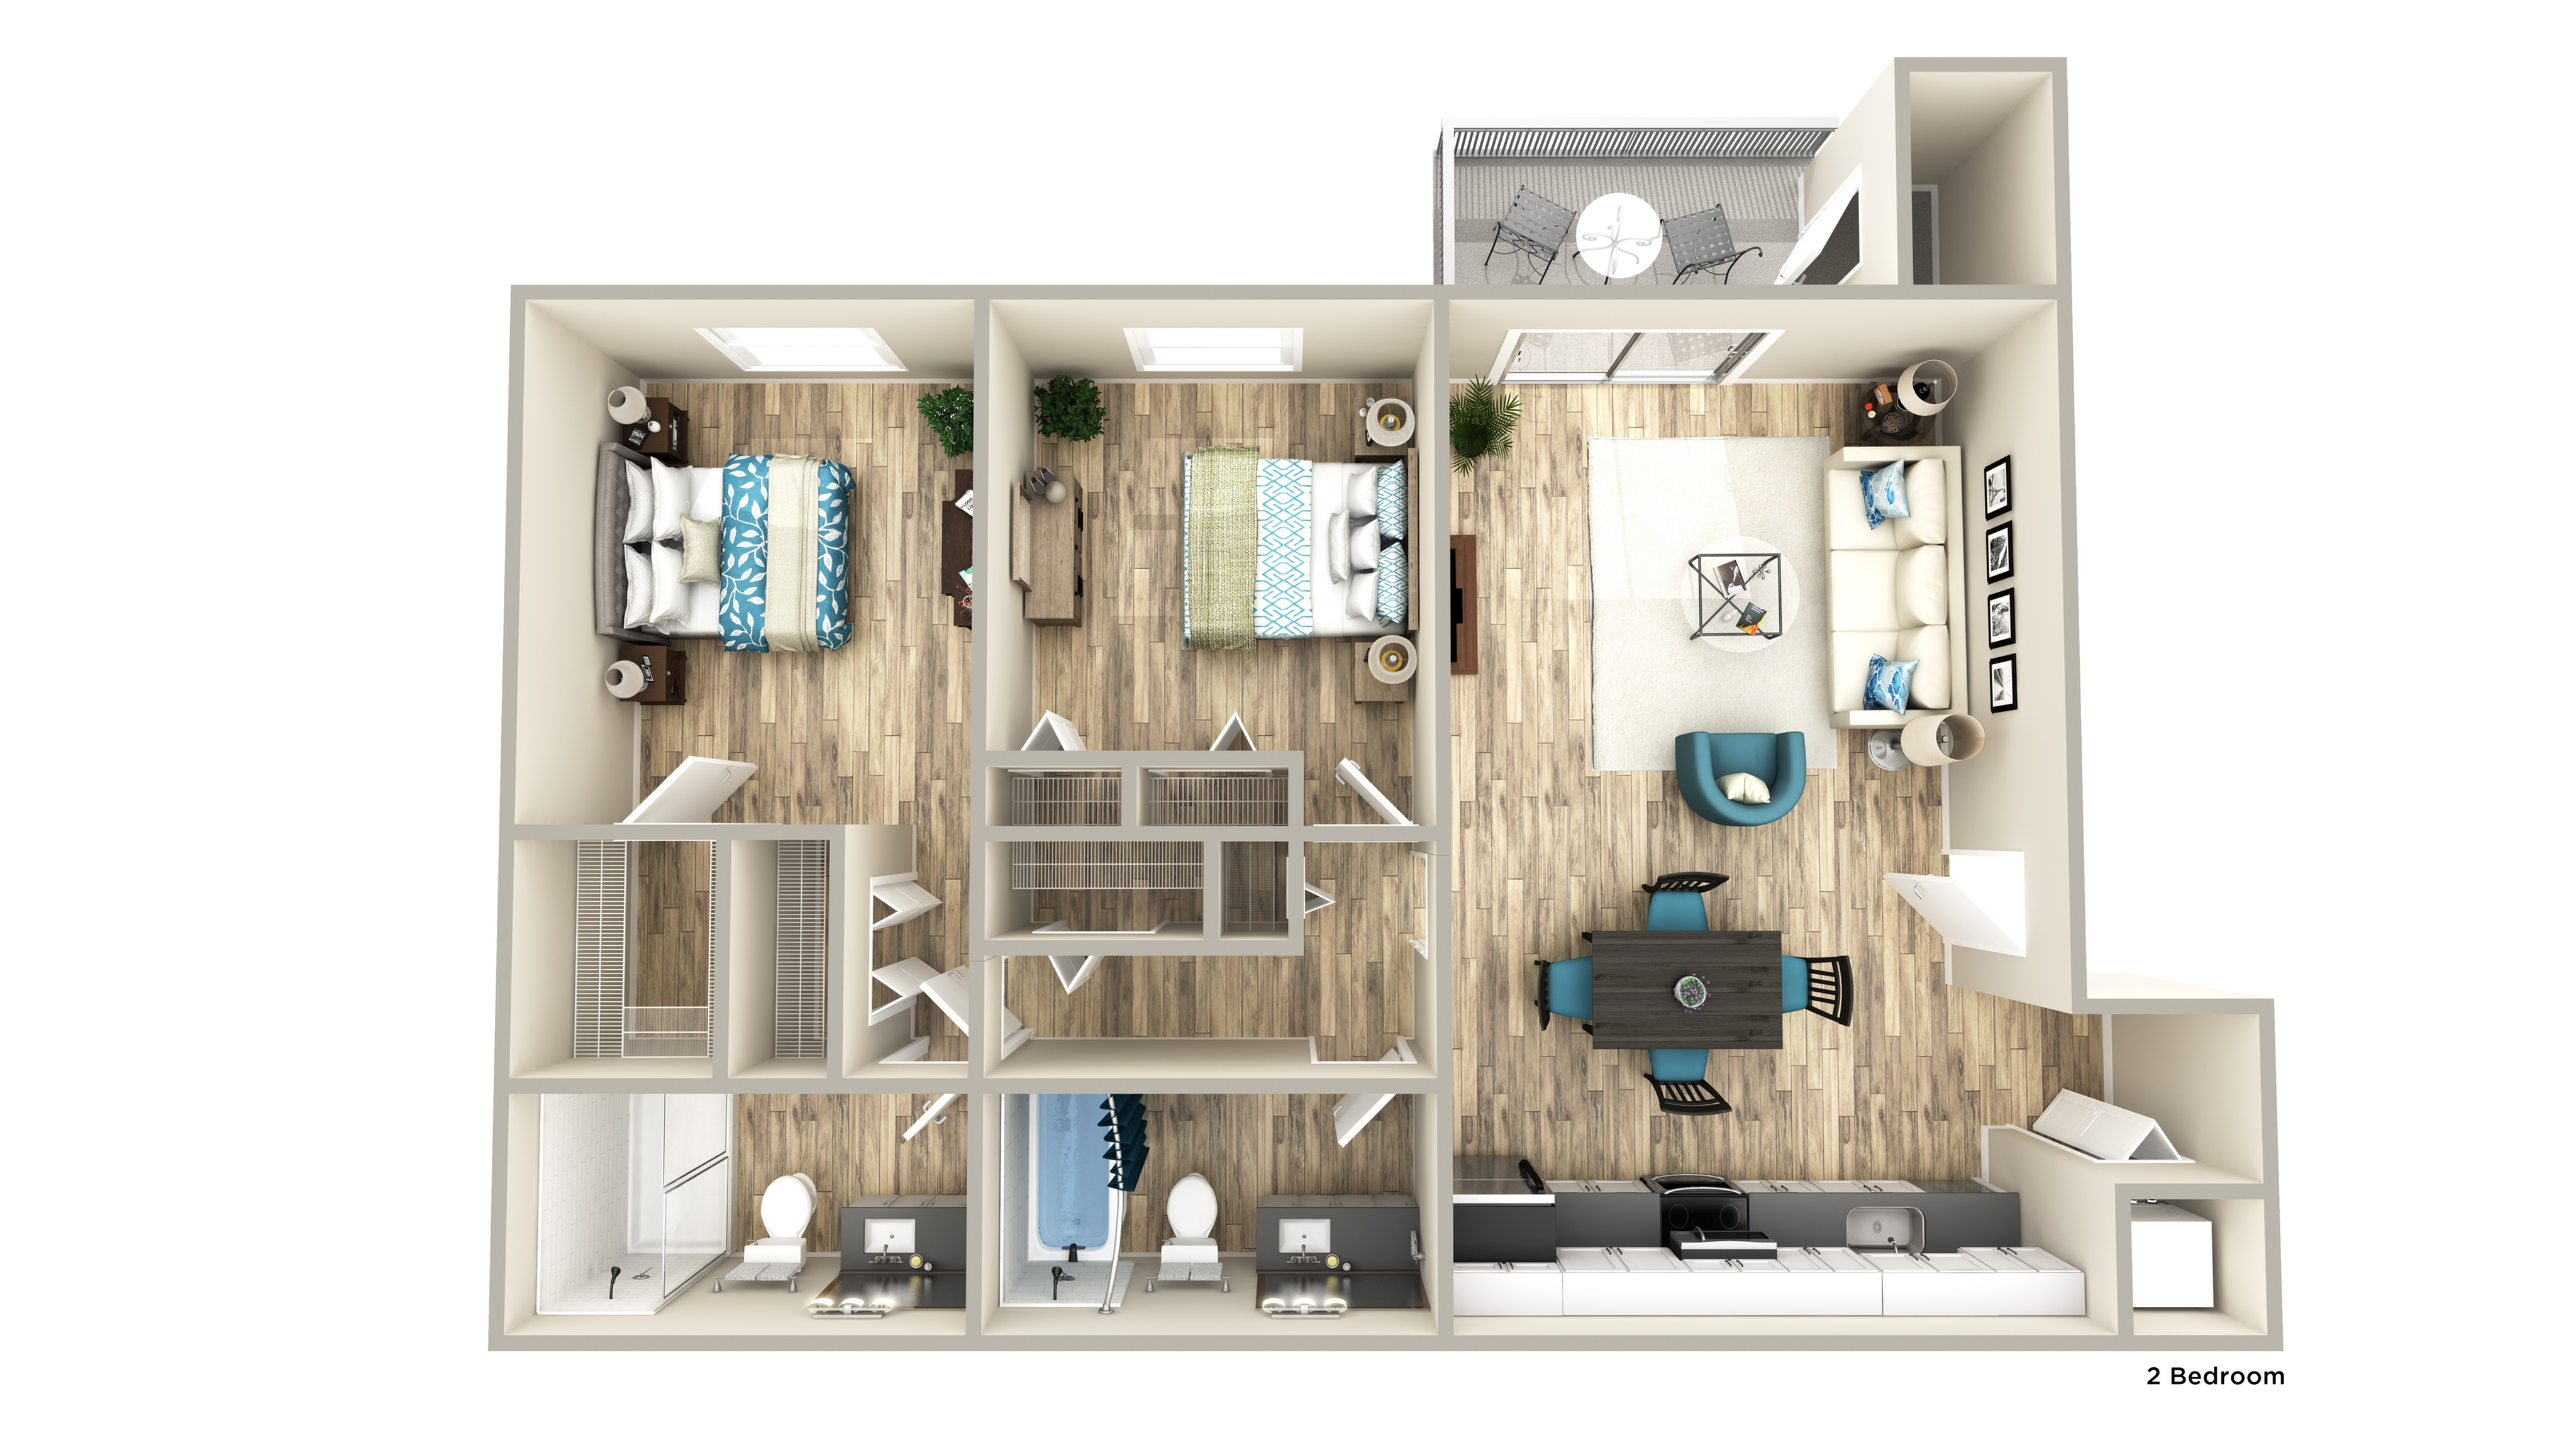 Two bedroom side by side with two bathroom